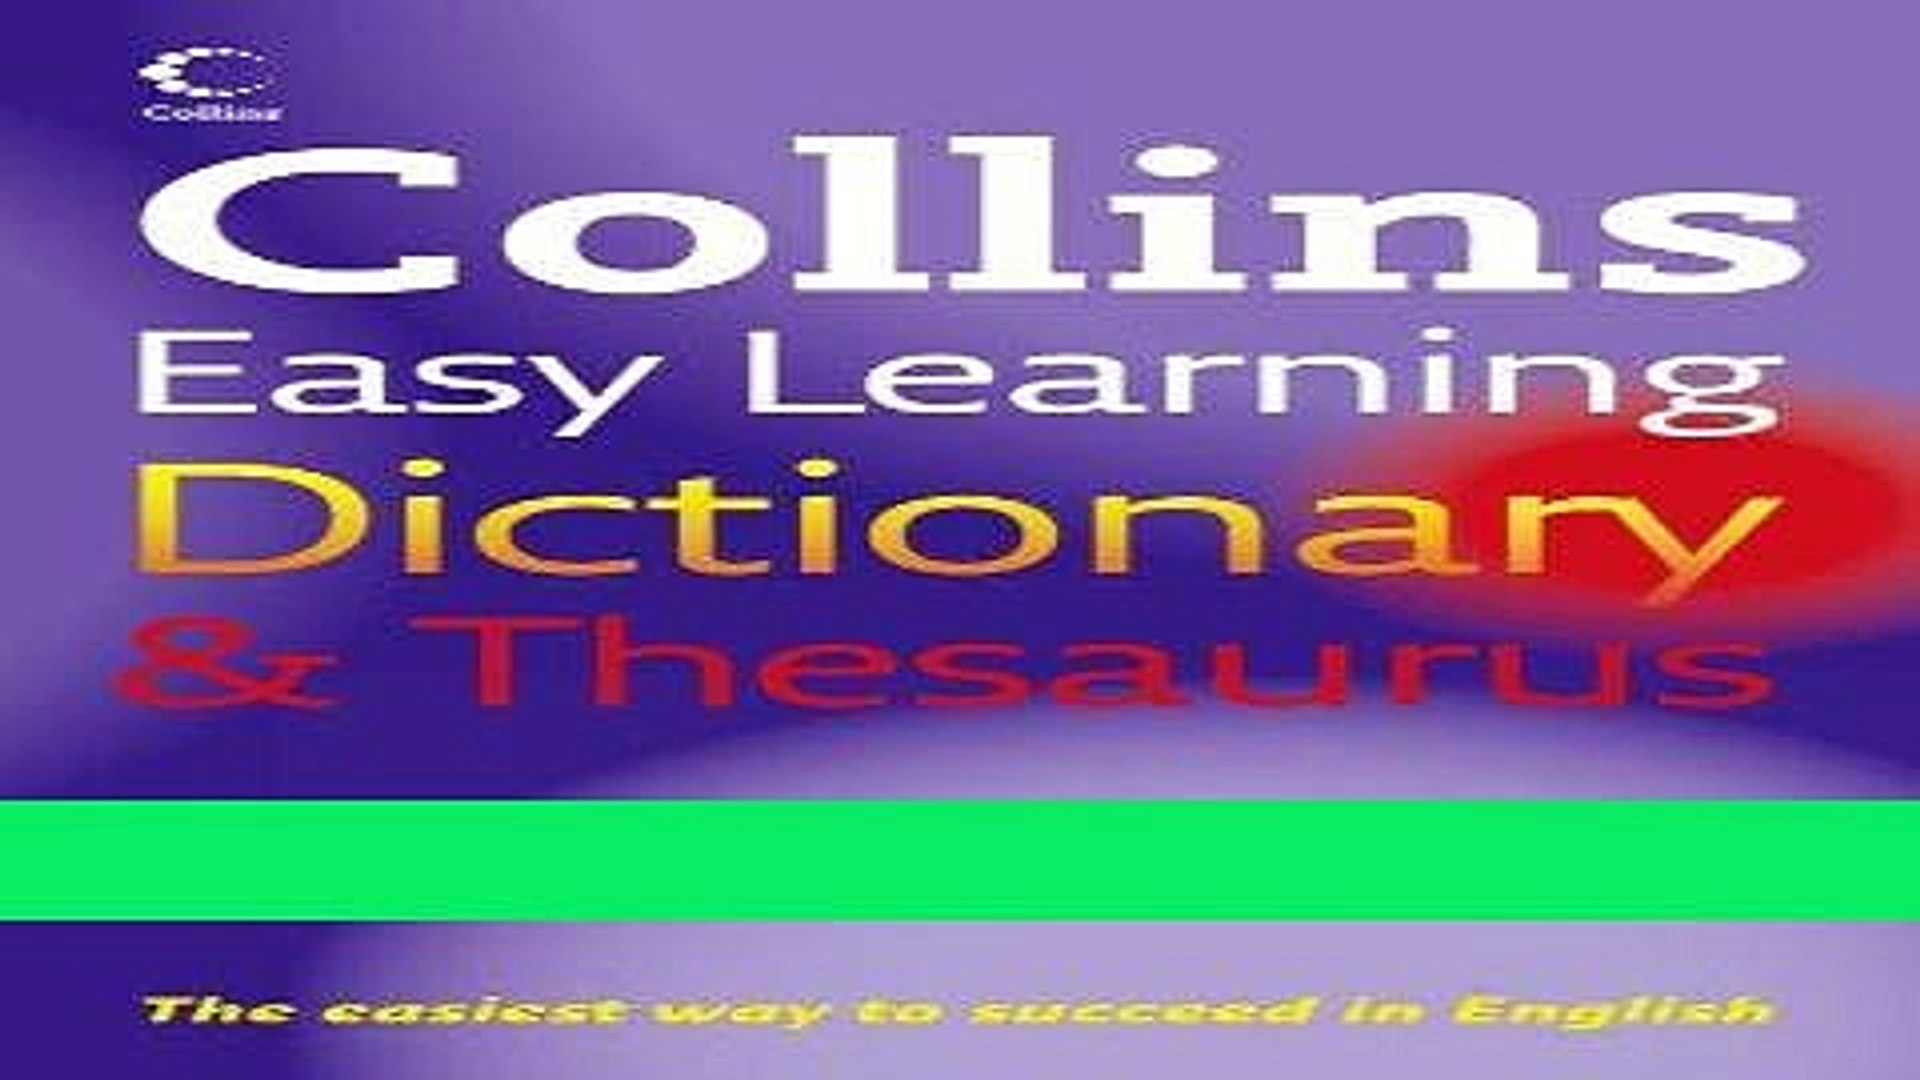 Collins Easy Learning Dictionary and Thesaurus Full Ebook